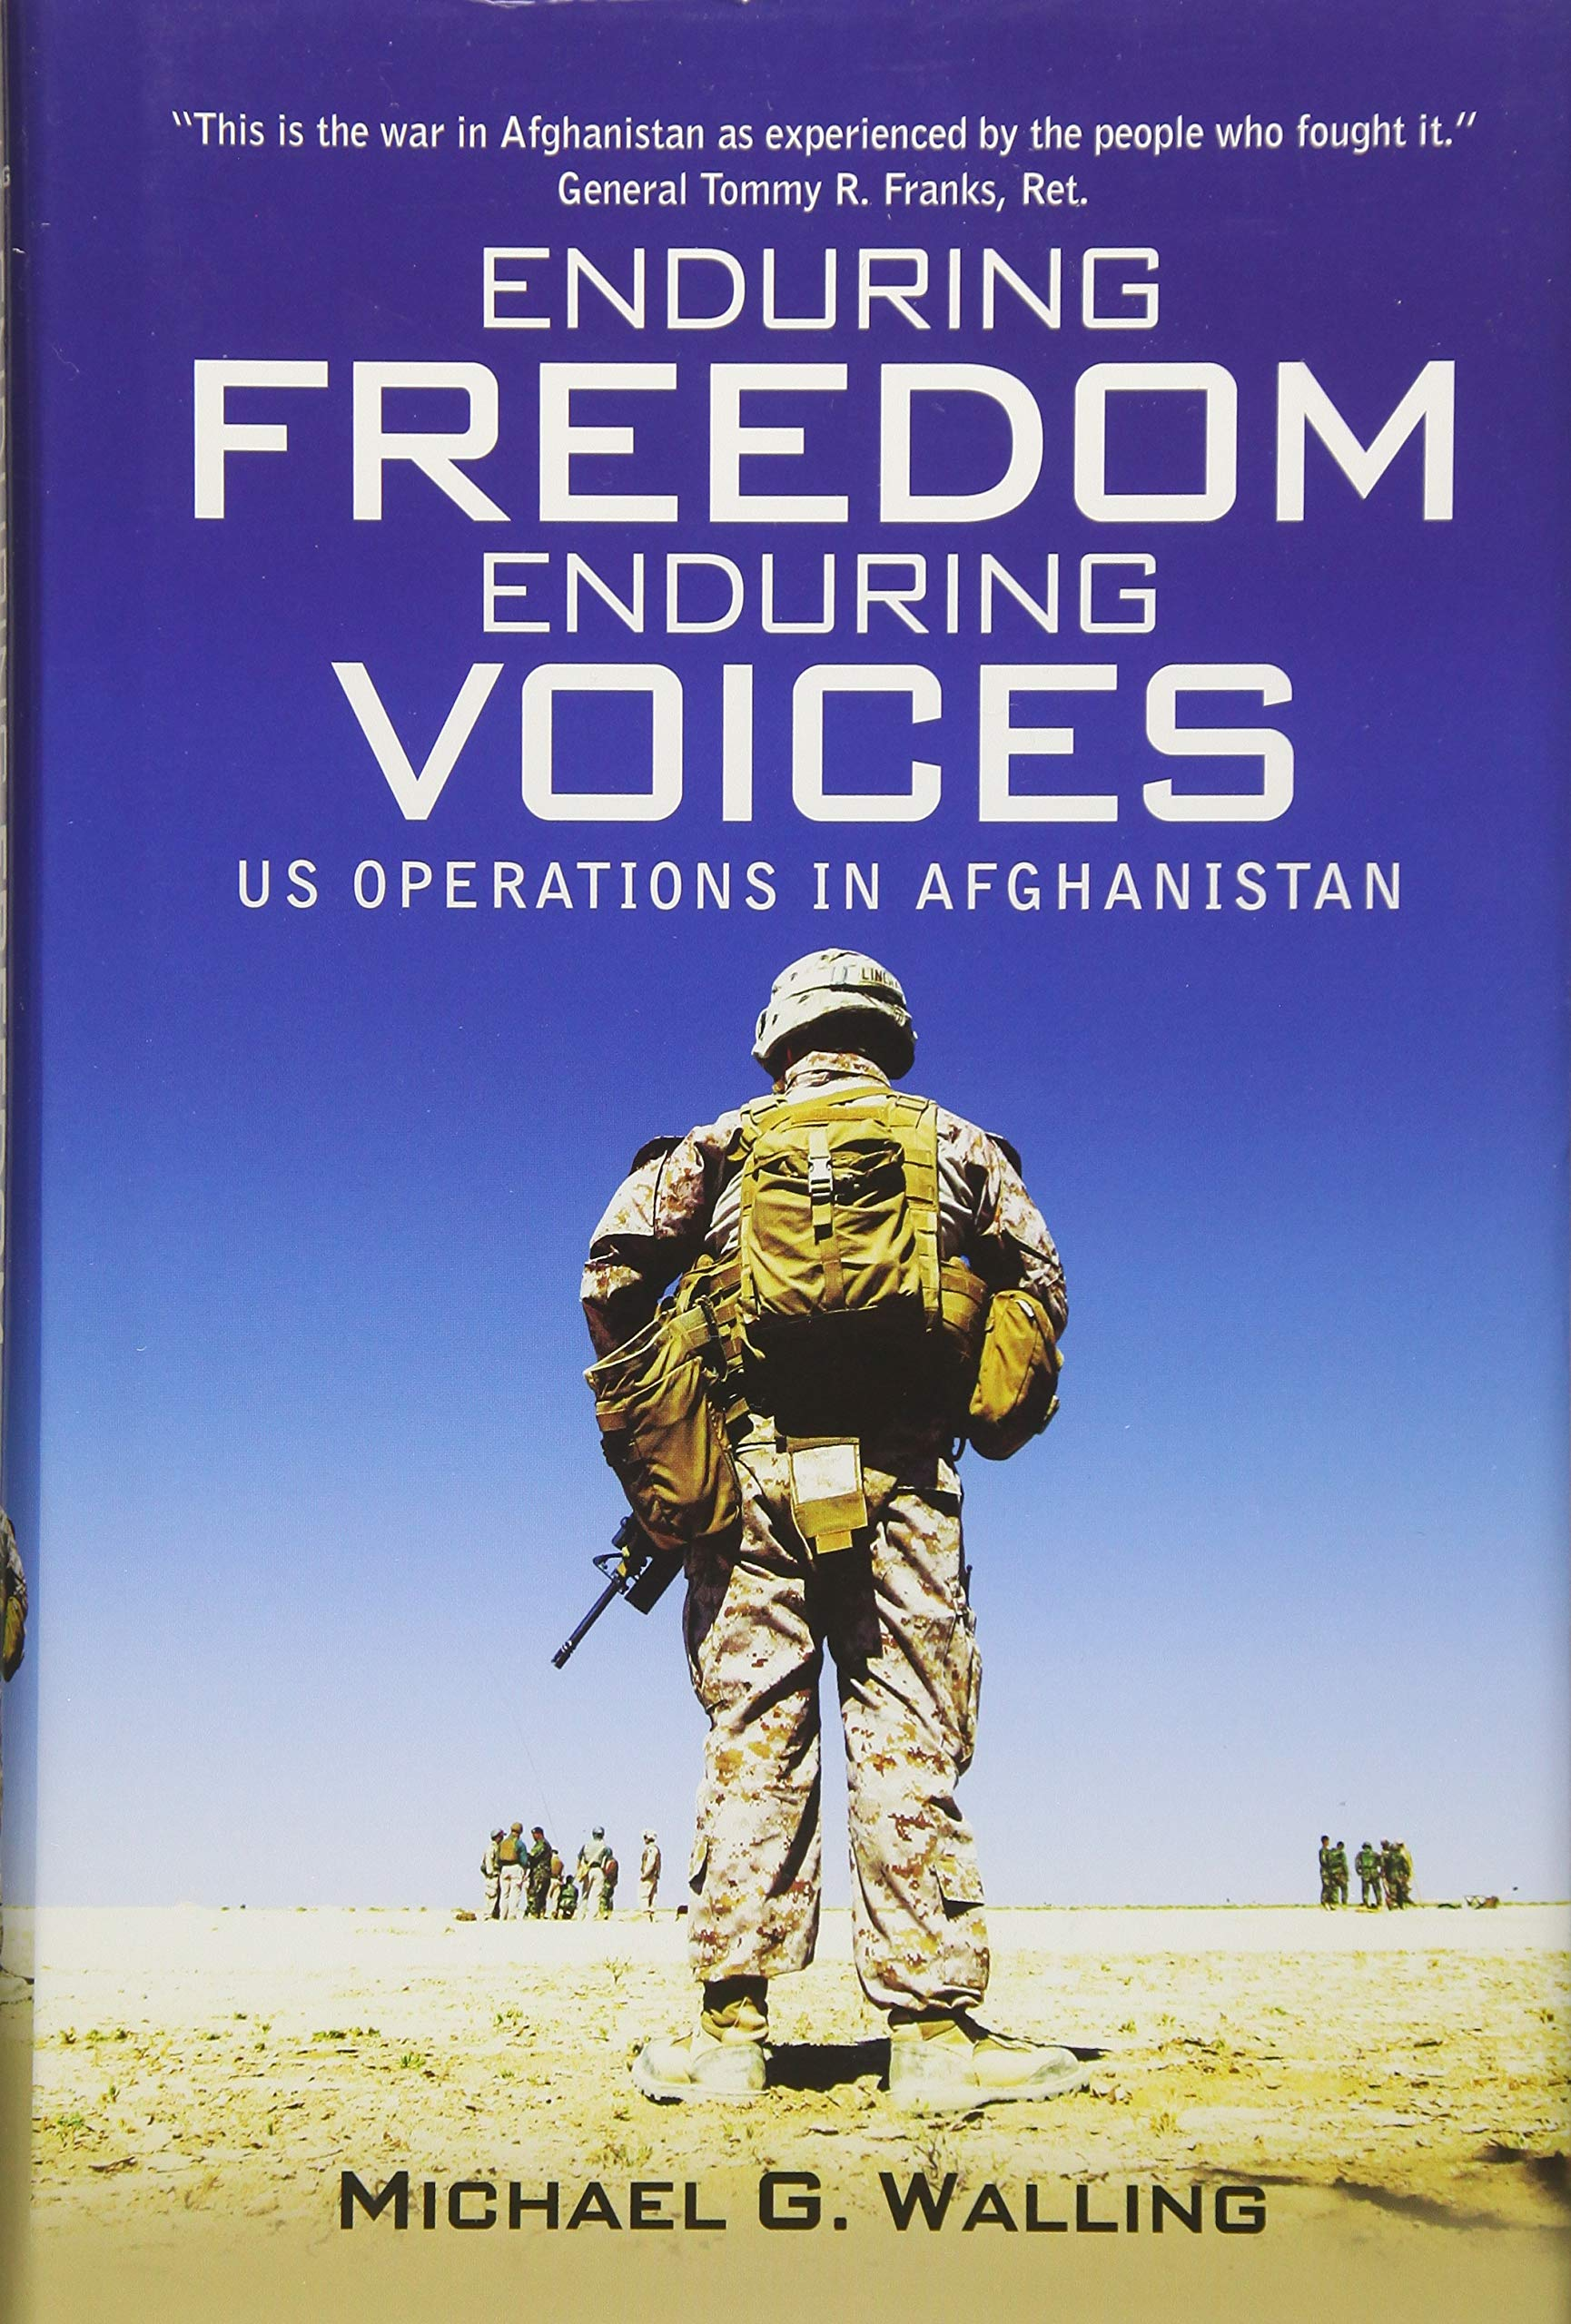 Buy Enduring Freedom, Enduring Voices: US Operations in Afghanistan  (General Military) Book Online at Low Prices in India | Enduring Freedom,  ...